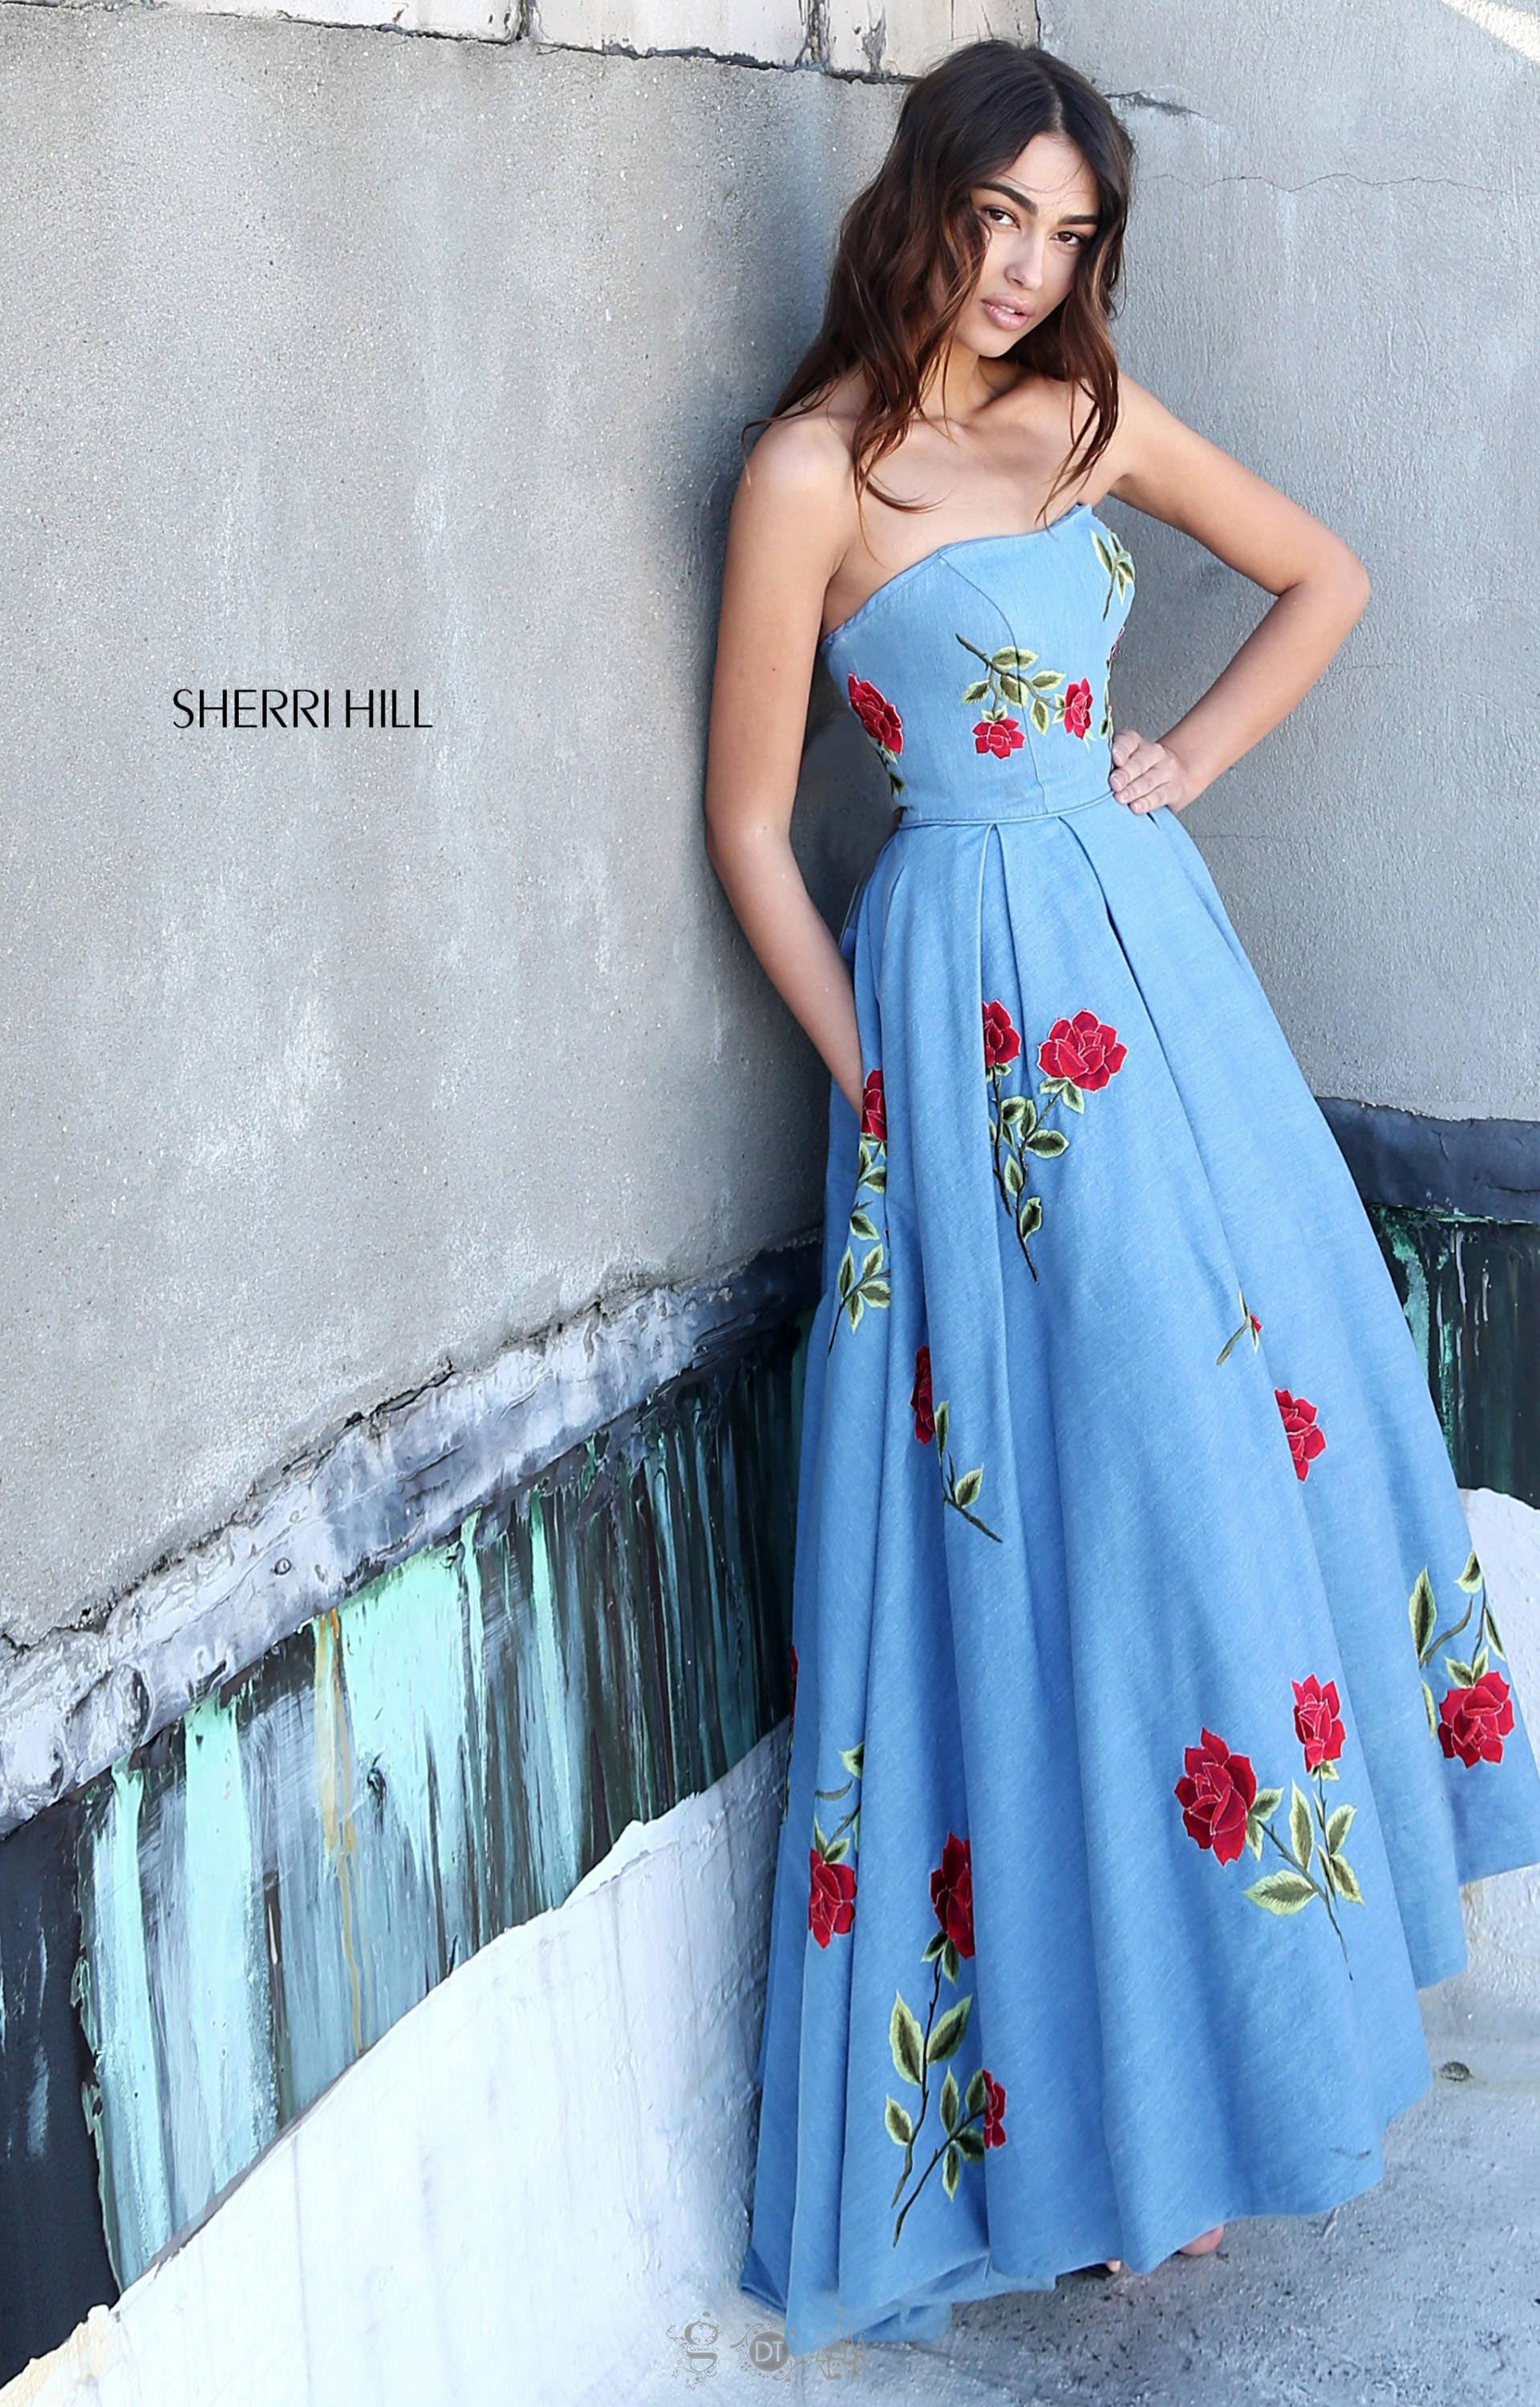 Sherri Hill 51154 - Denim and Roses A-Line Tea Length Ballgown Prom ...